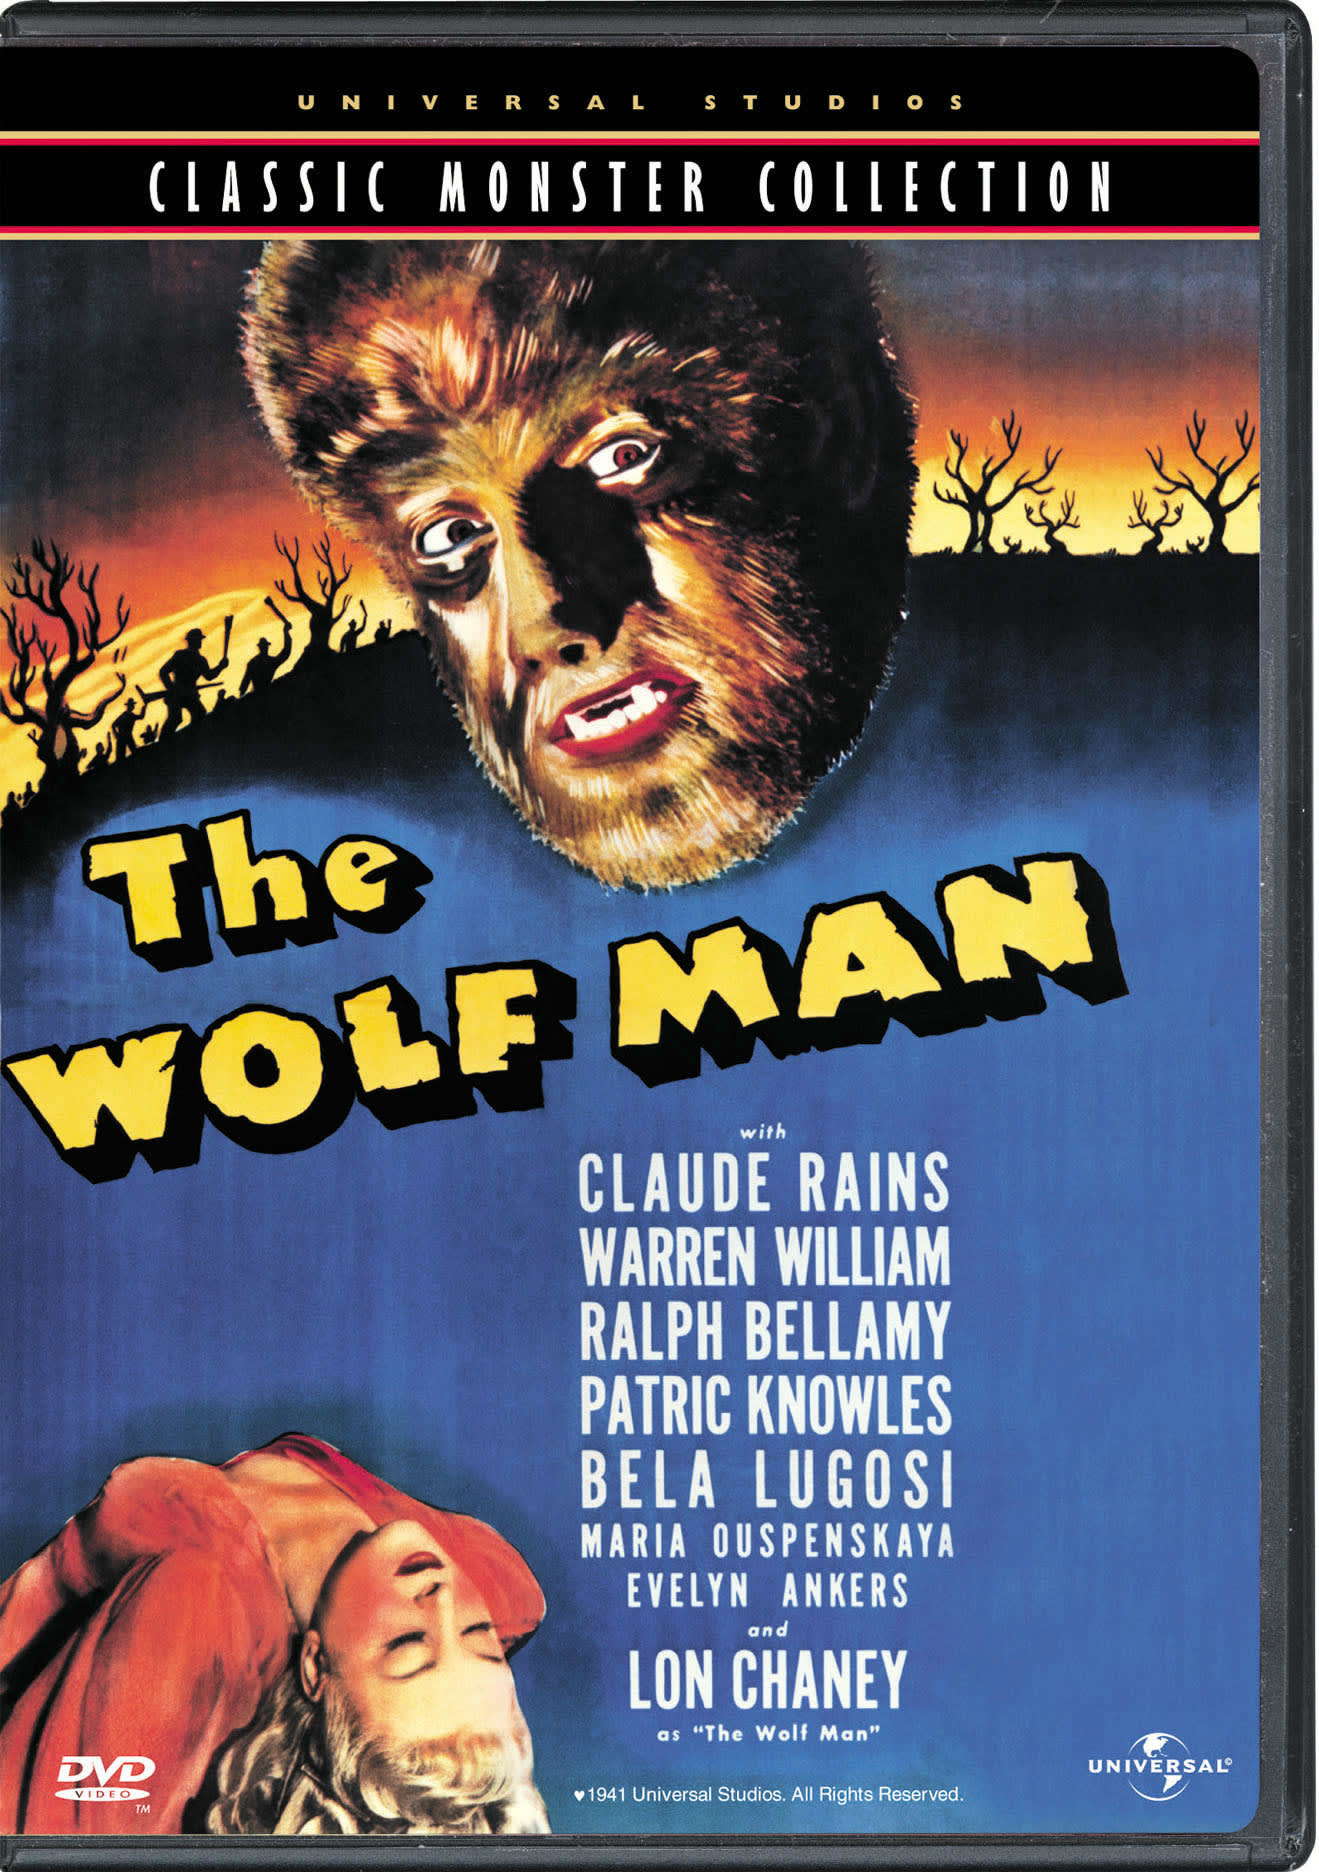 The Wolf Man (Universal Classic Monster Collection) [DVD]